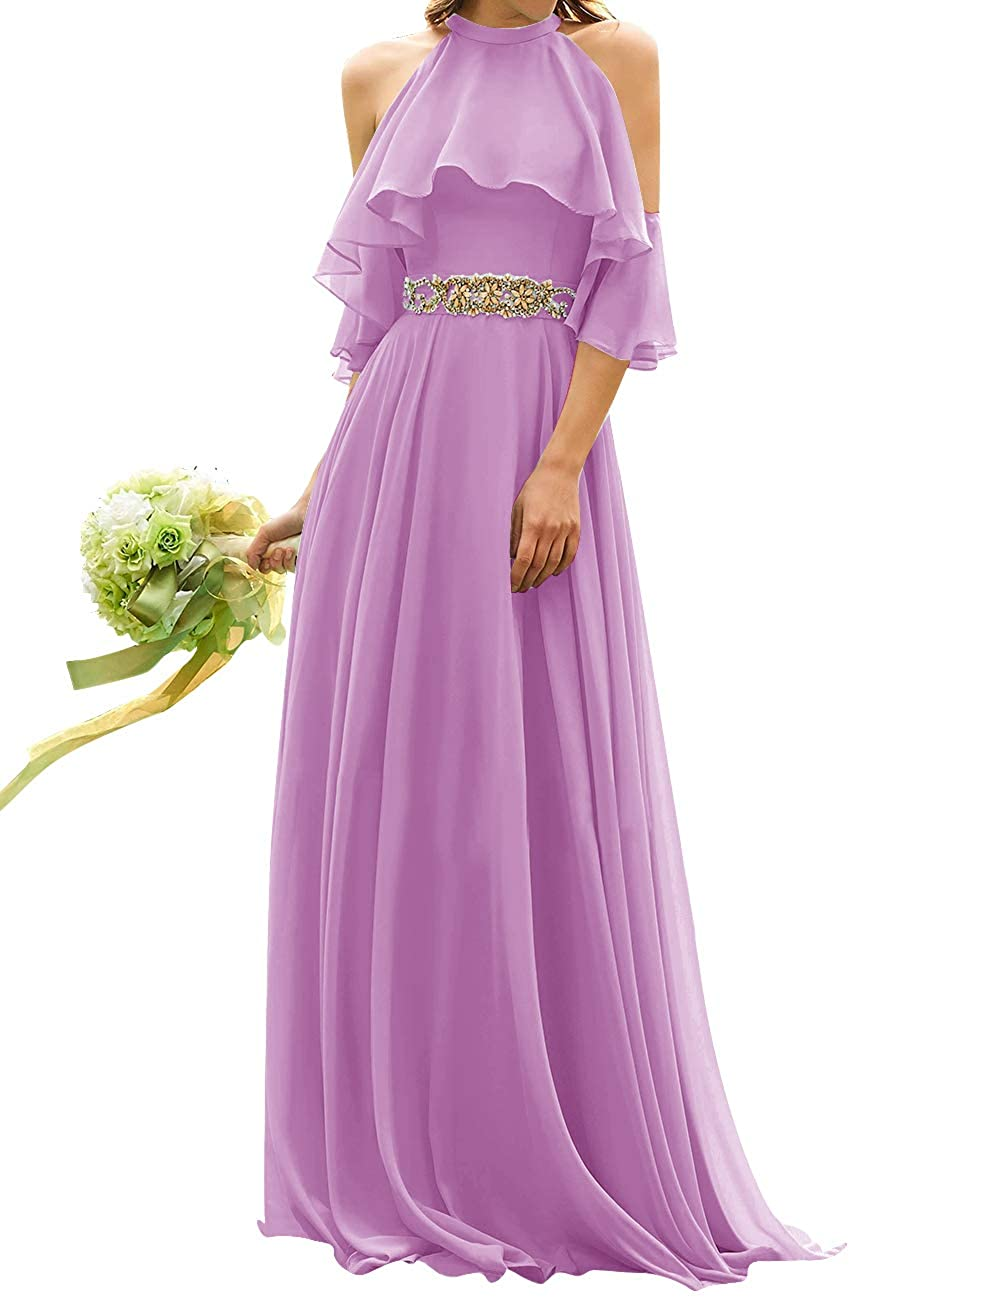 purplec Uther Long Bridesmaid Dress Cold Shoulder Beaded Ruffle Sleeves Wedding Party Dresses